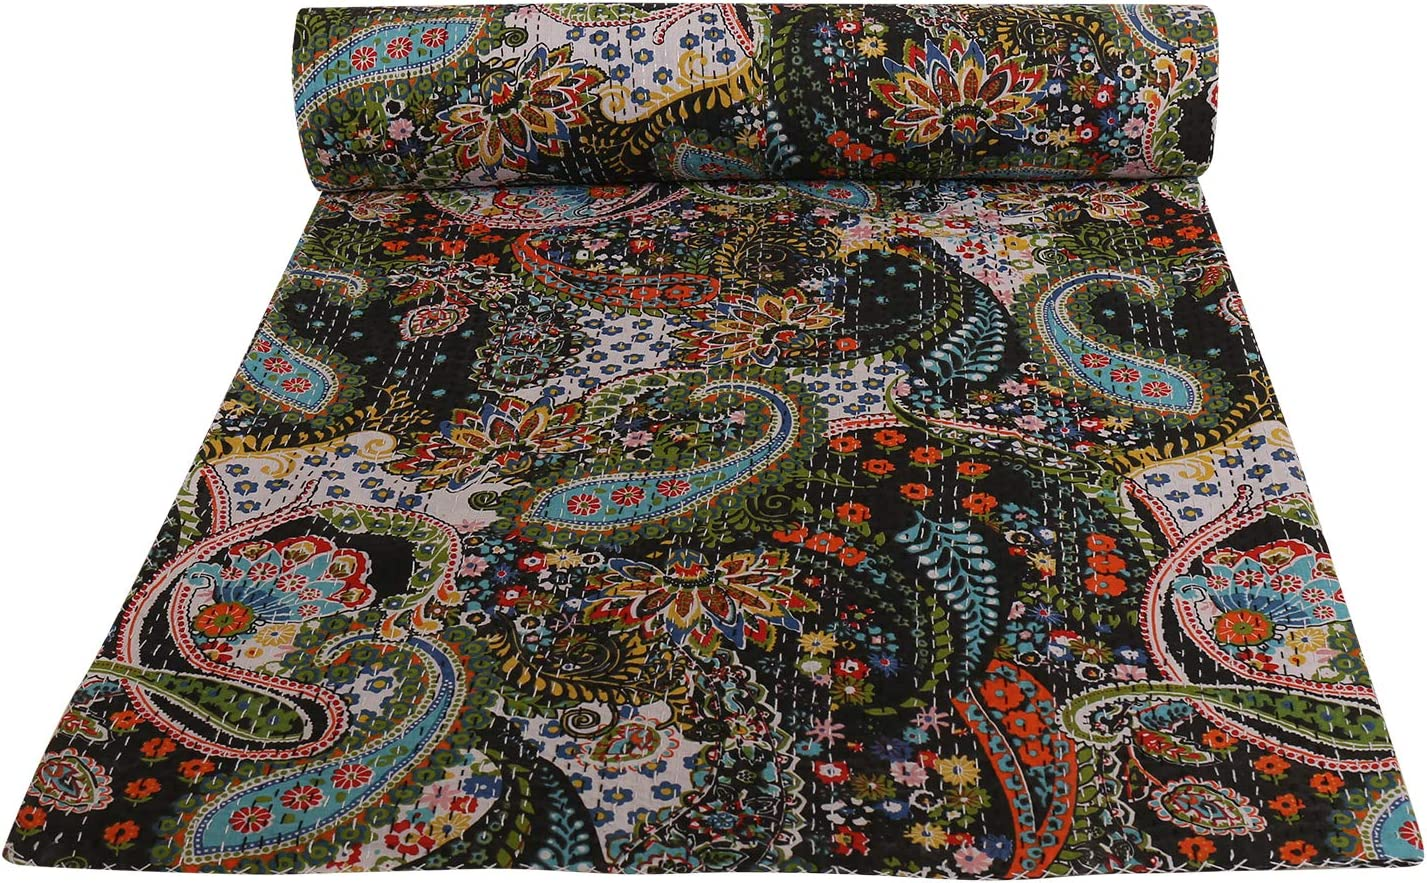 Indian-Shoppers Handmade Cotton Kantha Bed Sheet Hippie Bedroom Decor Kantha Gudri Ethnic Black Paisley Quilts Reversible Queen Size Indian Coverlets Bohemian Comforter